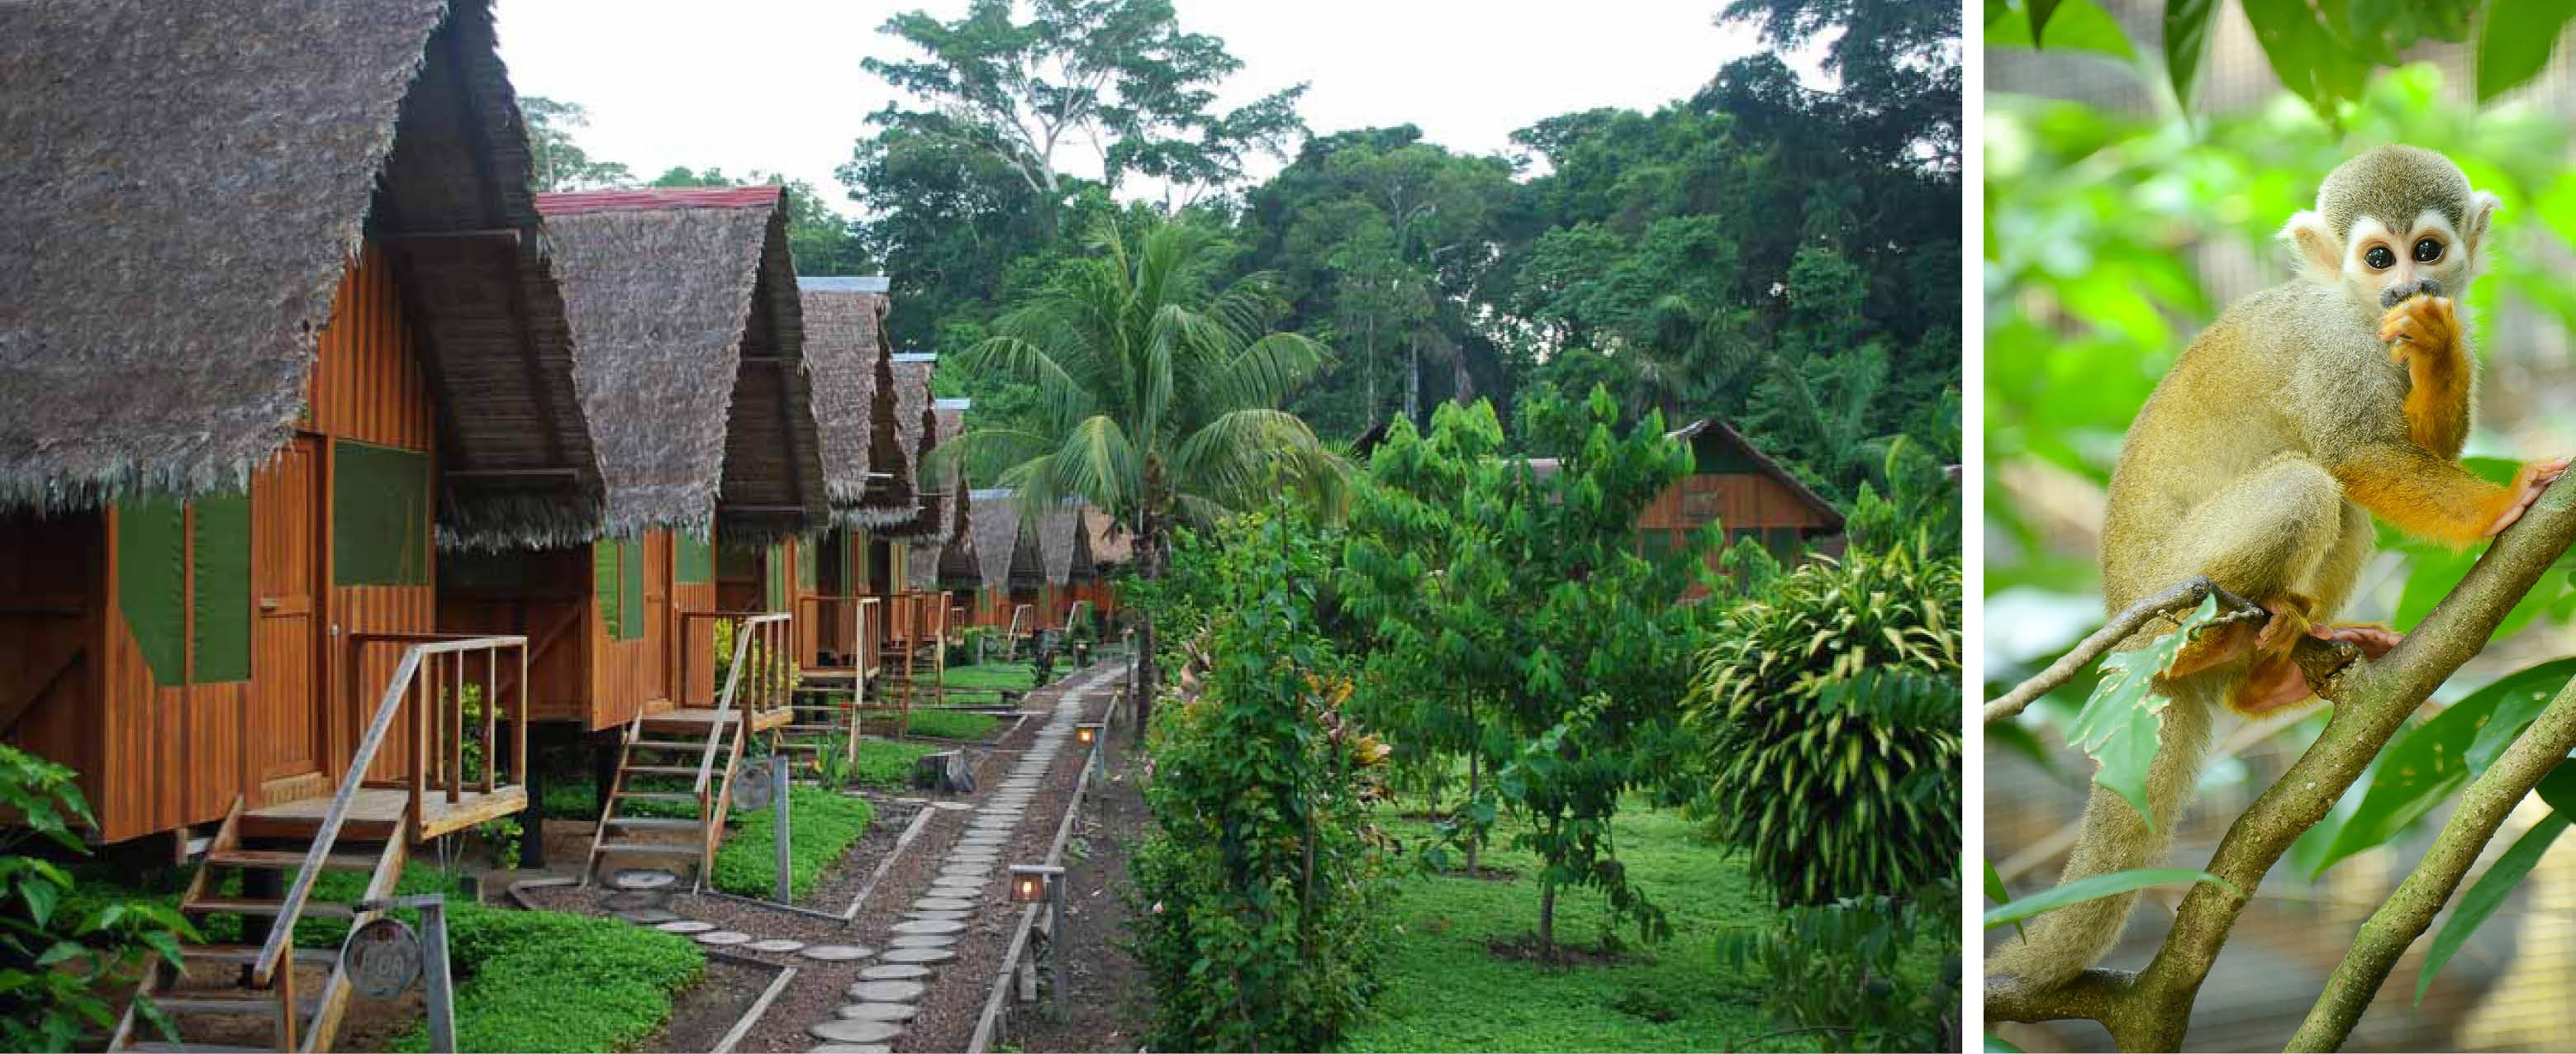 Eco Amazonia Lodge i perus jungle